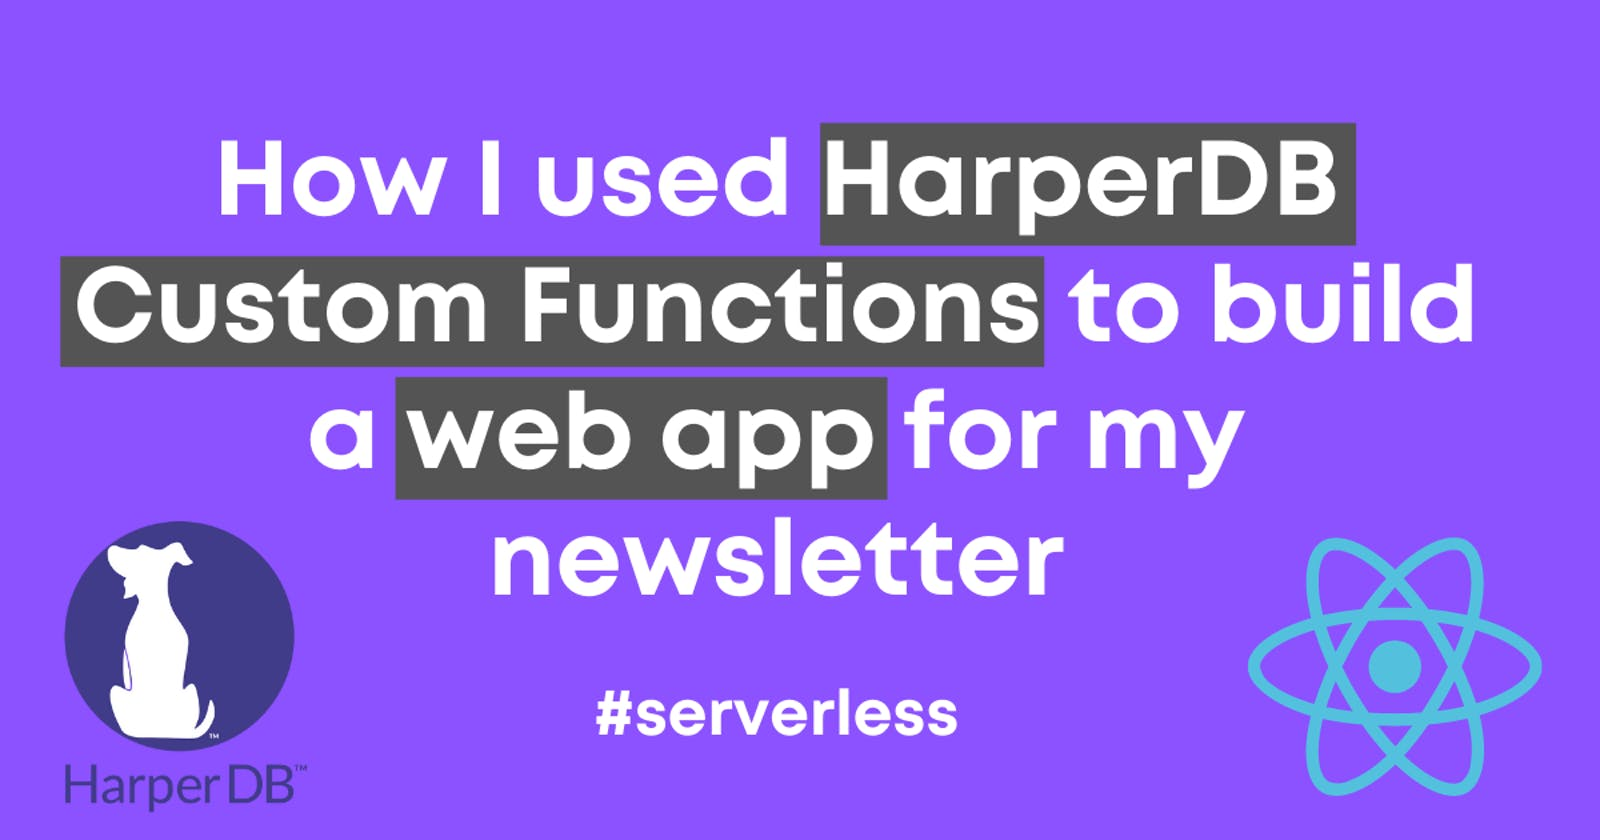 How I used HarperDB Custom Functions to build a web app for my newsletter